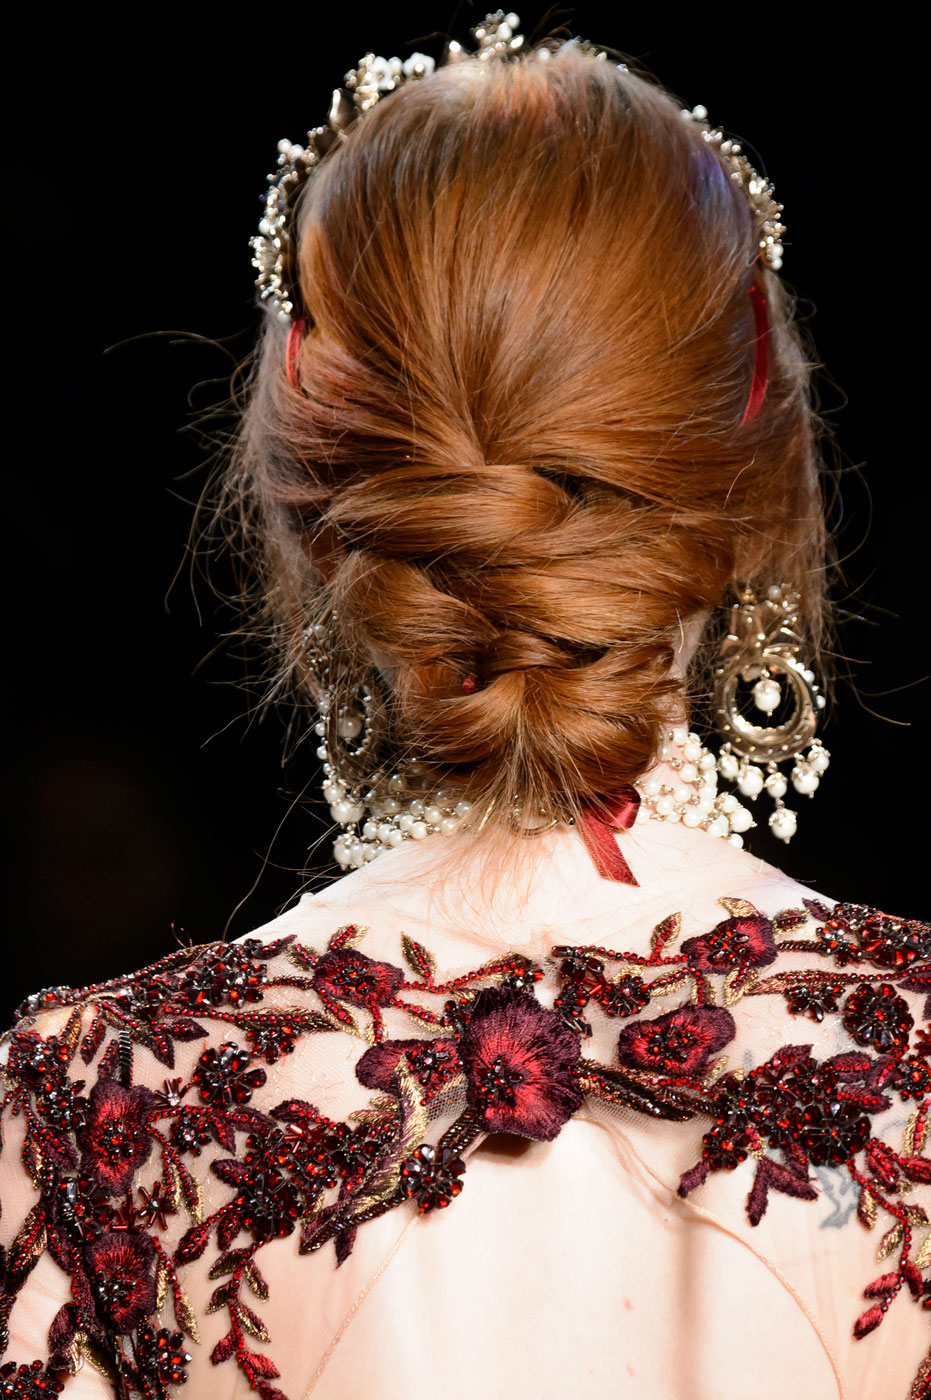 The Best Beauty Looks from NYFW Fall 2016 - Marchesa Autumn-Winter 2016 | Harper's Bazaar - 8 Romantic Hairstyles for Fall